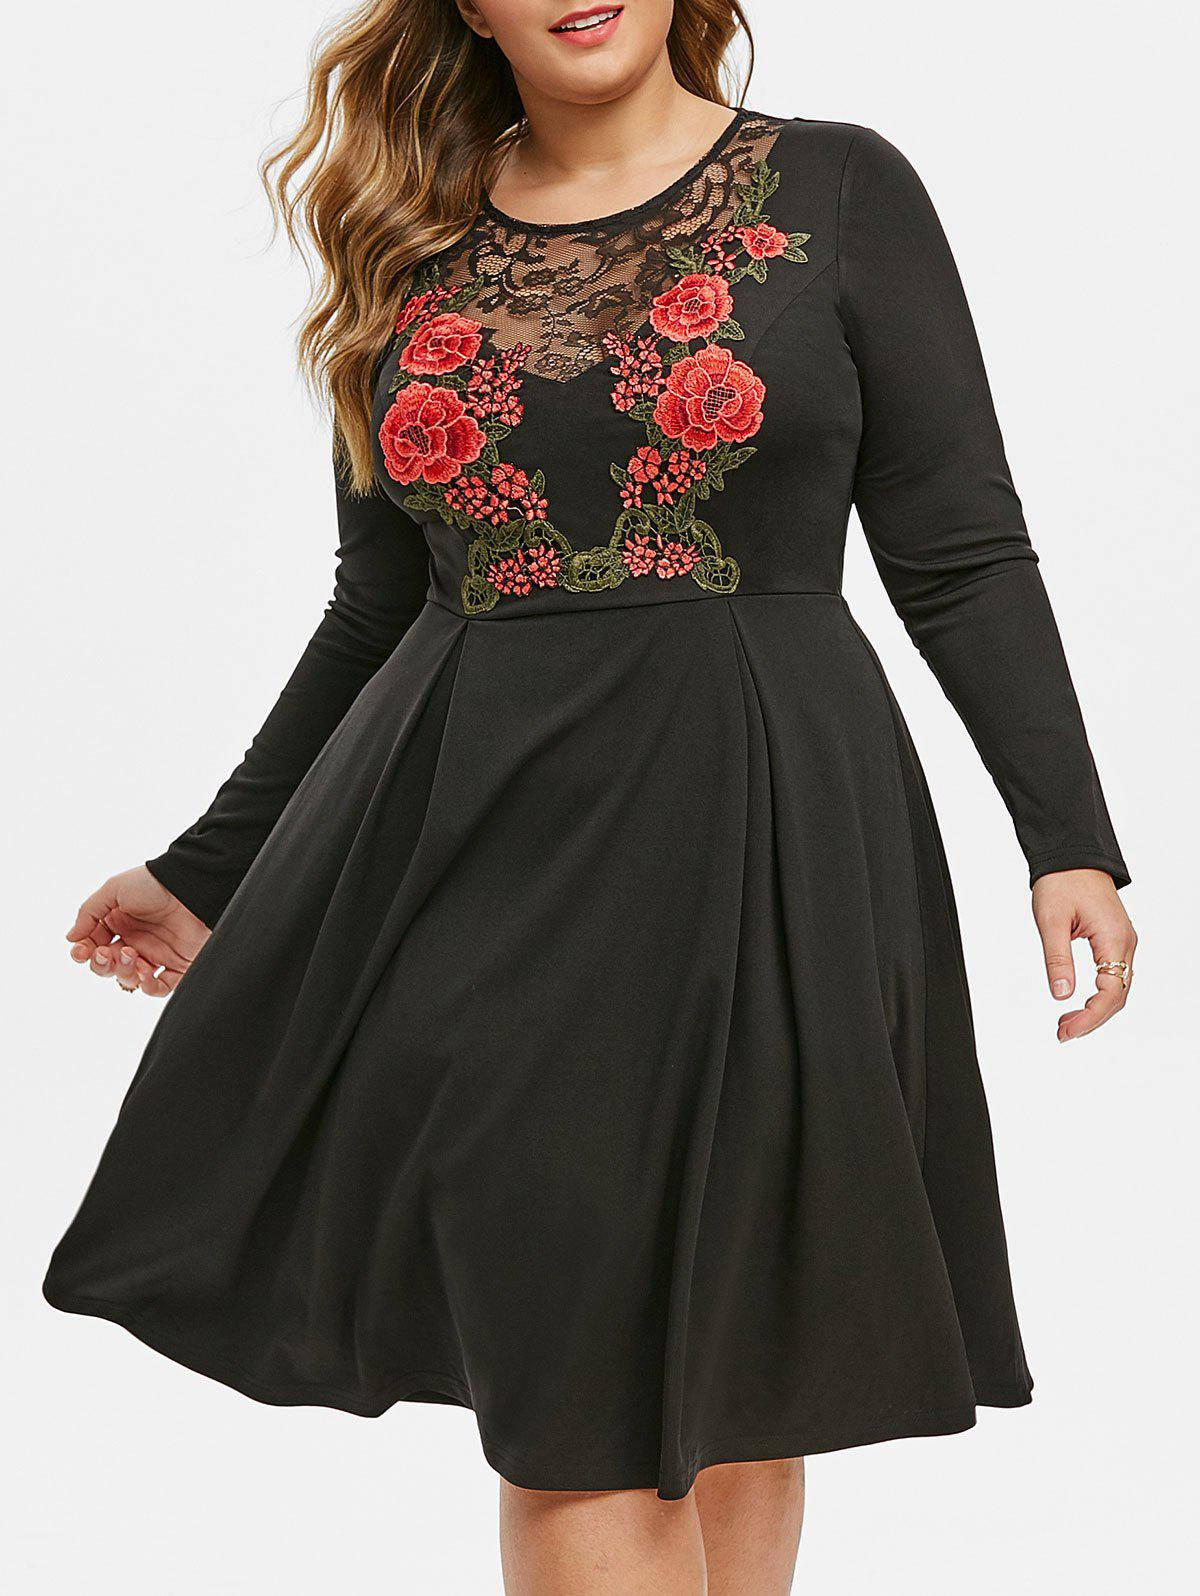 Plus Size Lace Panel Floral Embroidery Long Sleeve Dress фото